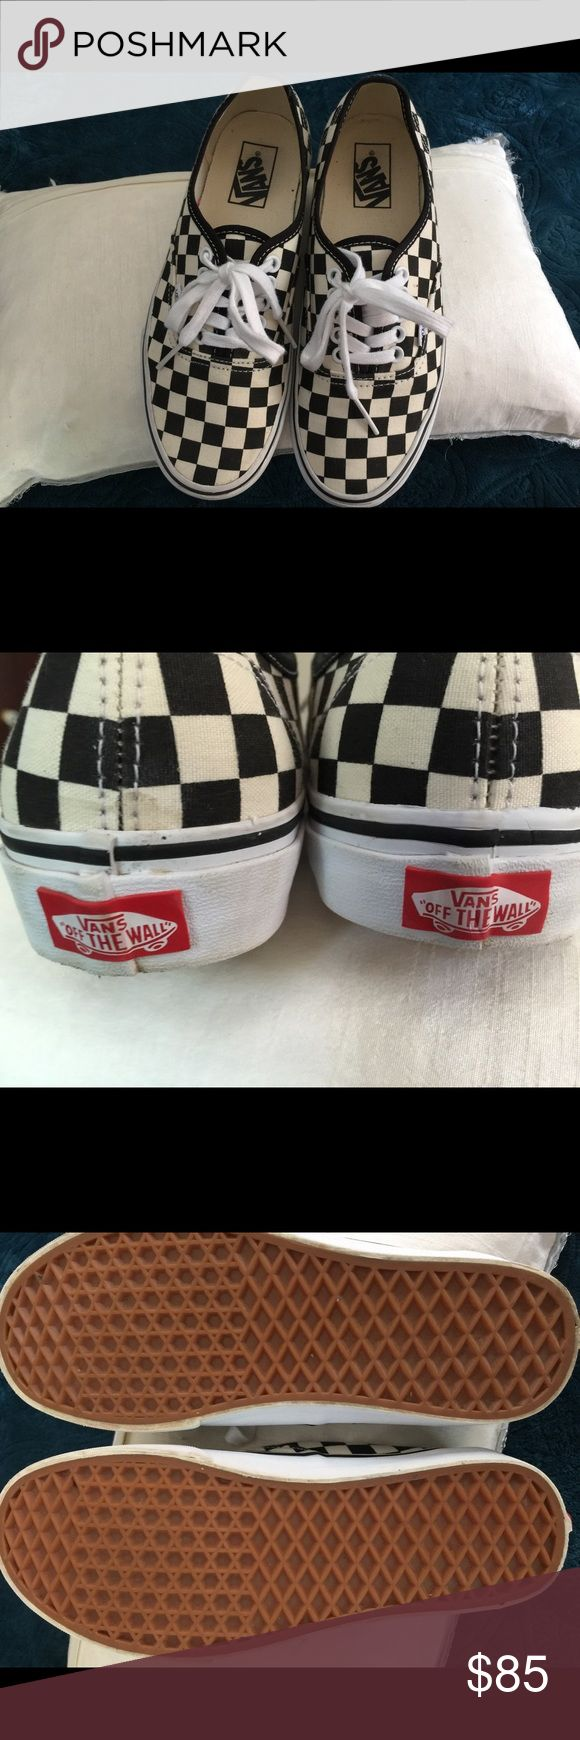 ONE DAY SALE *VANS GOLDEN COAST MENS 7 LADIES 8.5 Worn once. Mint condition. No box. RARE RETIRED. THESE ARE COLLECTOR EDITION. Vans Shoes Athletic Shoes